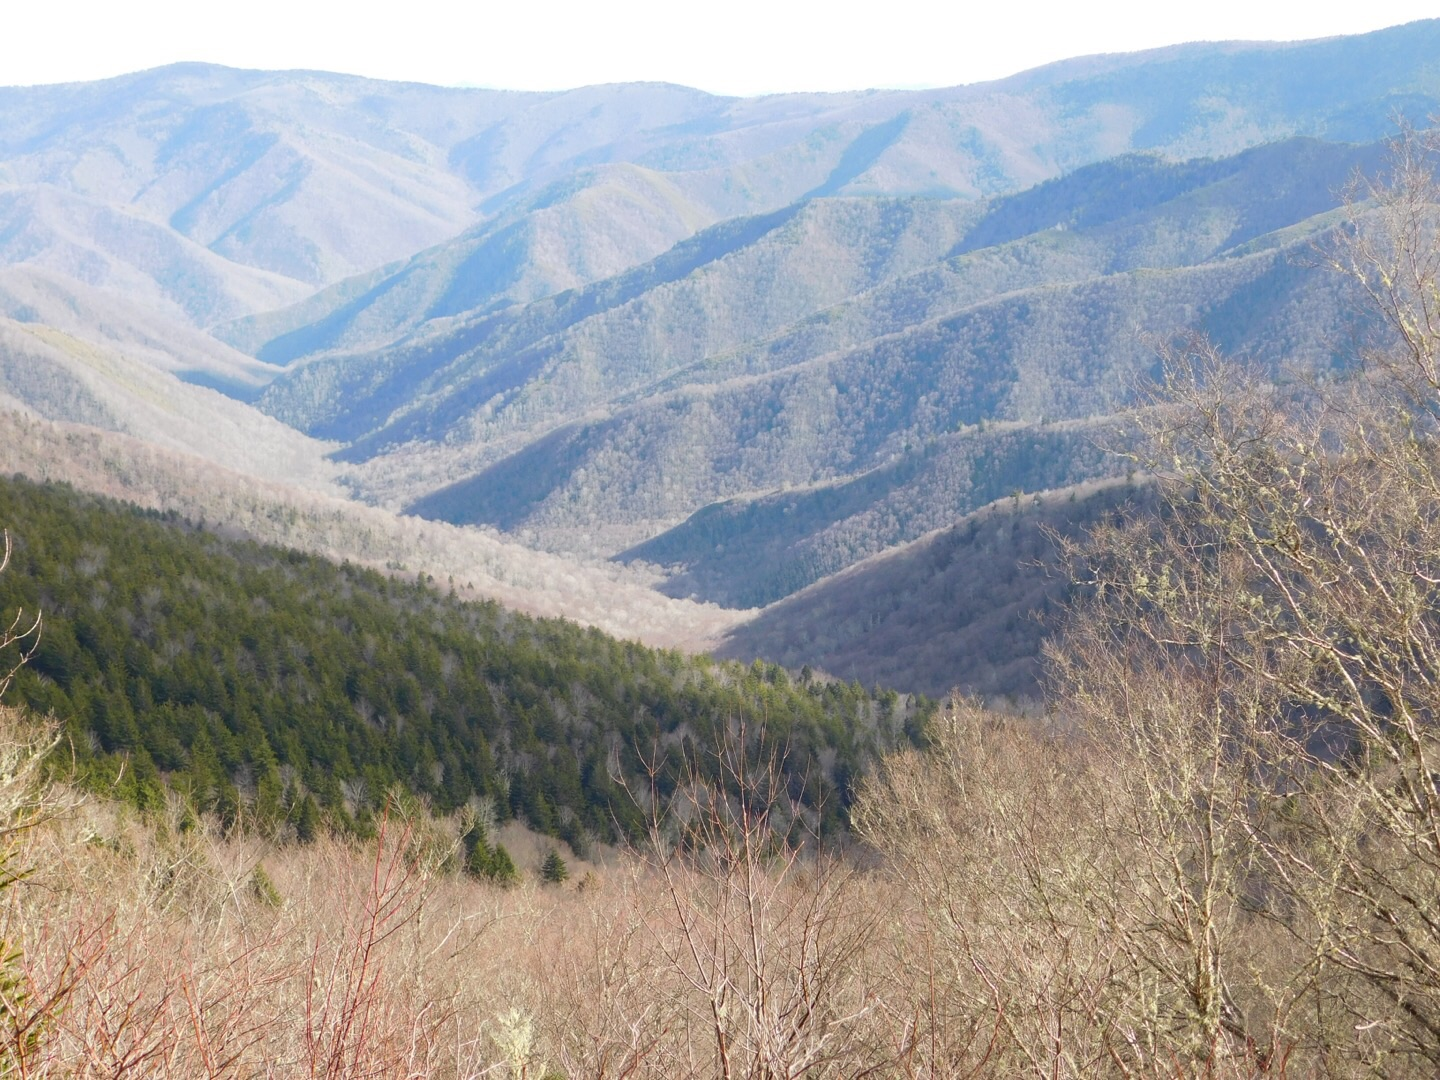 The beautiful view from the top. The ridge line is the Benton MacKaye Trail, our first summer thru hike in 2015.